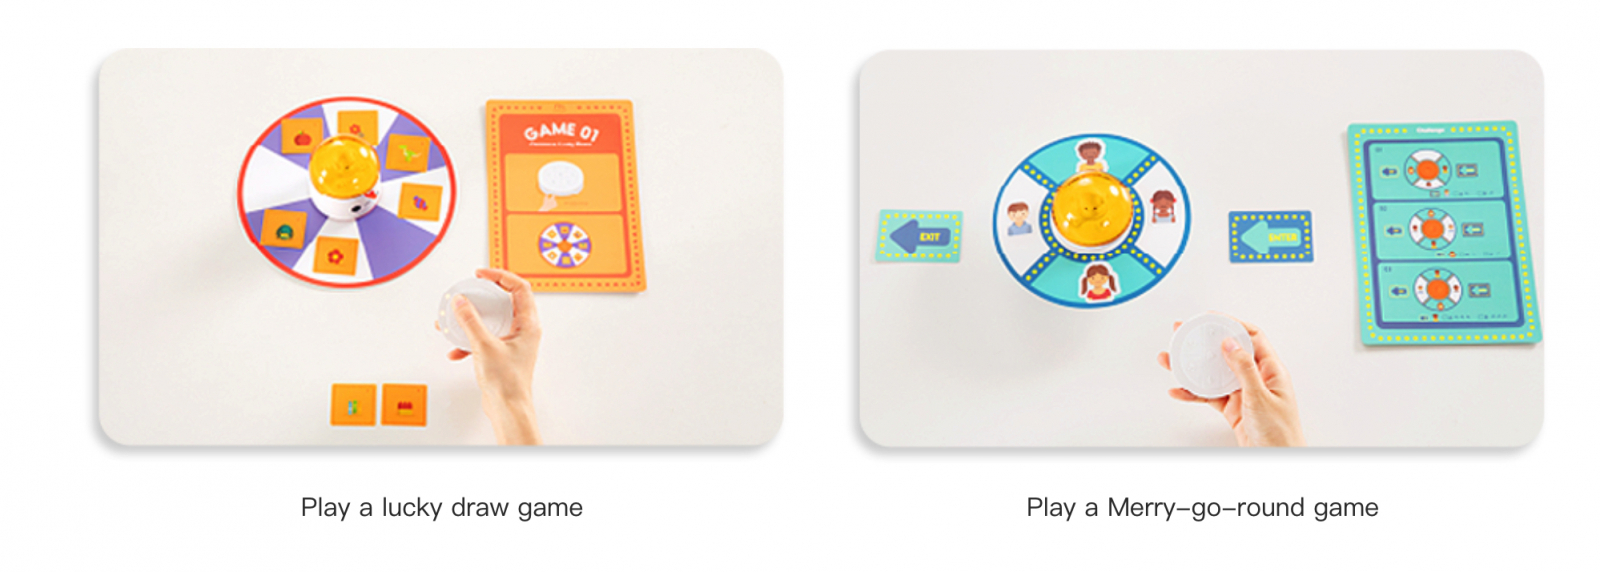 Play a lucky draw game with Matatalab Lite - Coding Toys - Matatalab